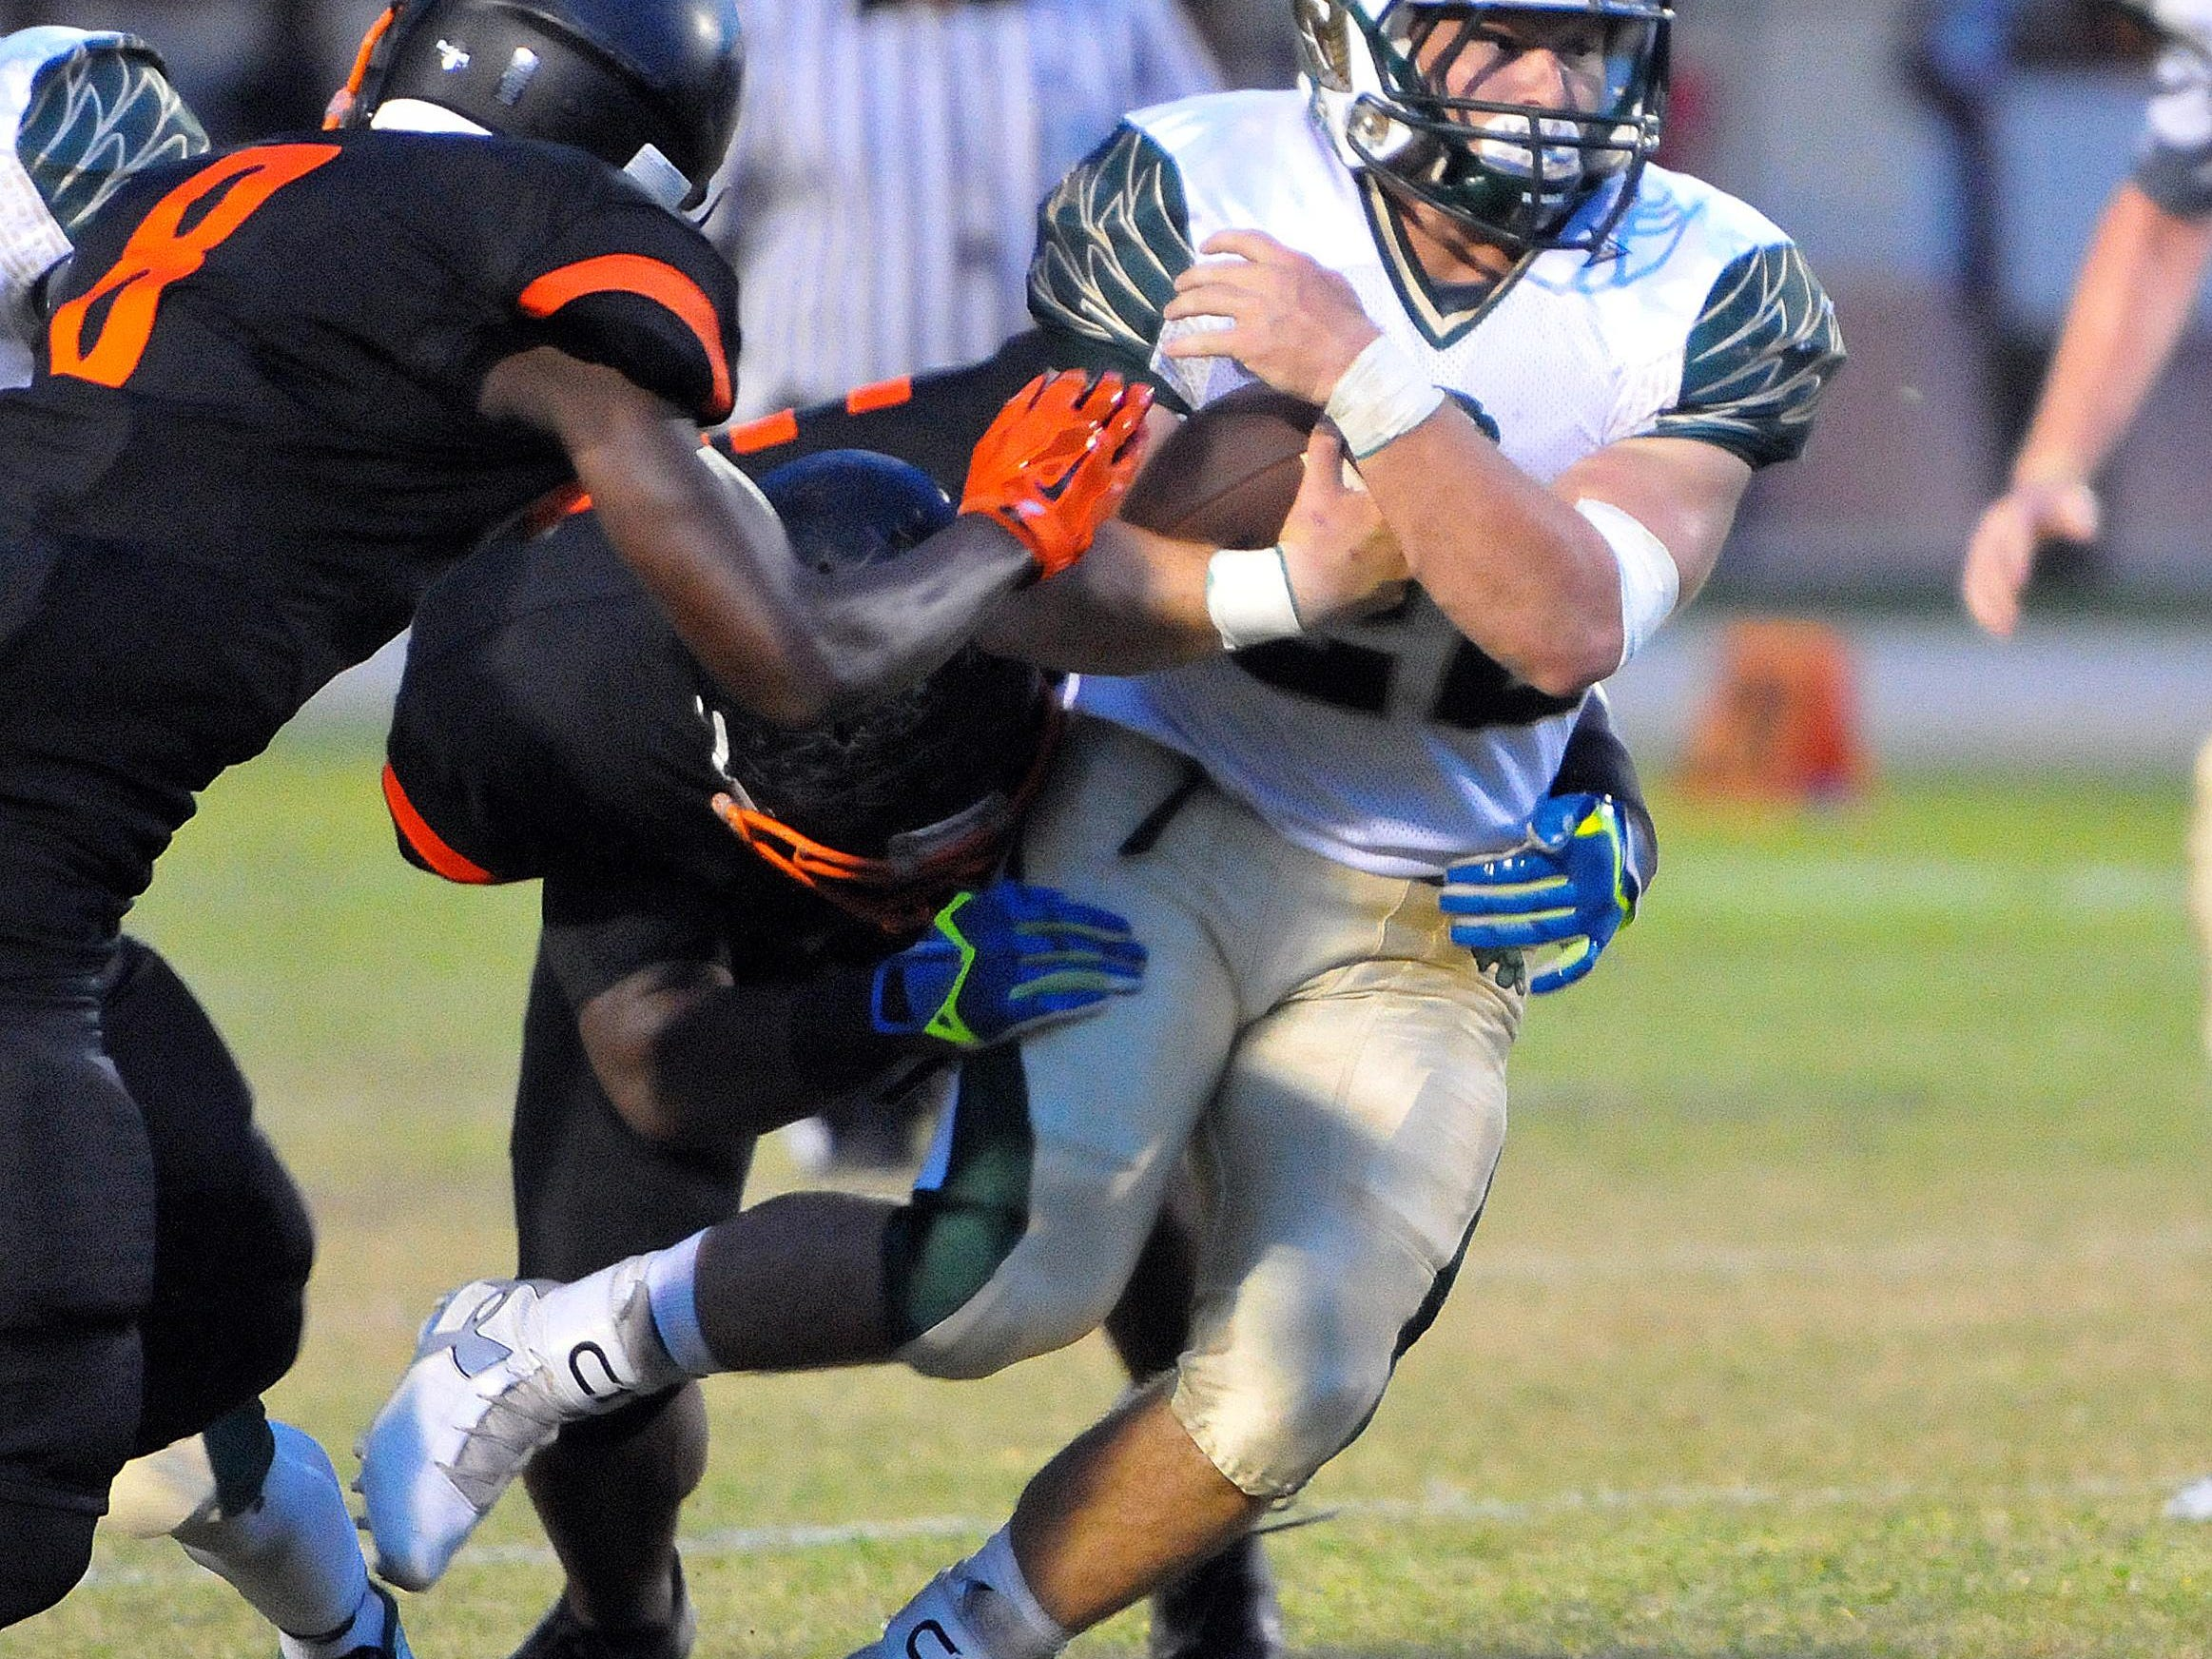 Viera High's Brennen DePlancke picks up some nice yards during Friday night's game against Cocoa High at Tiger Stadium.